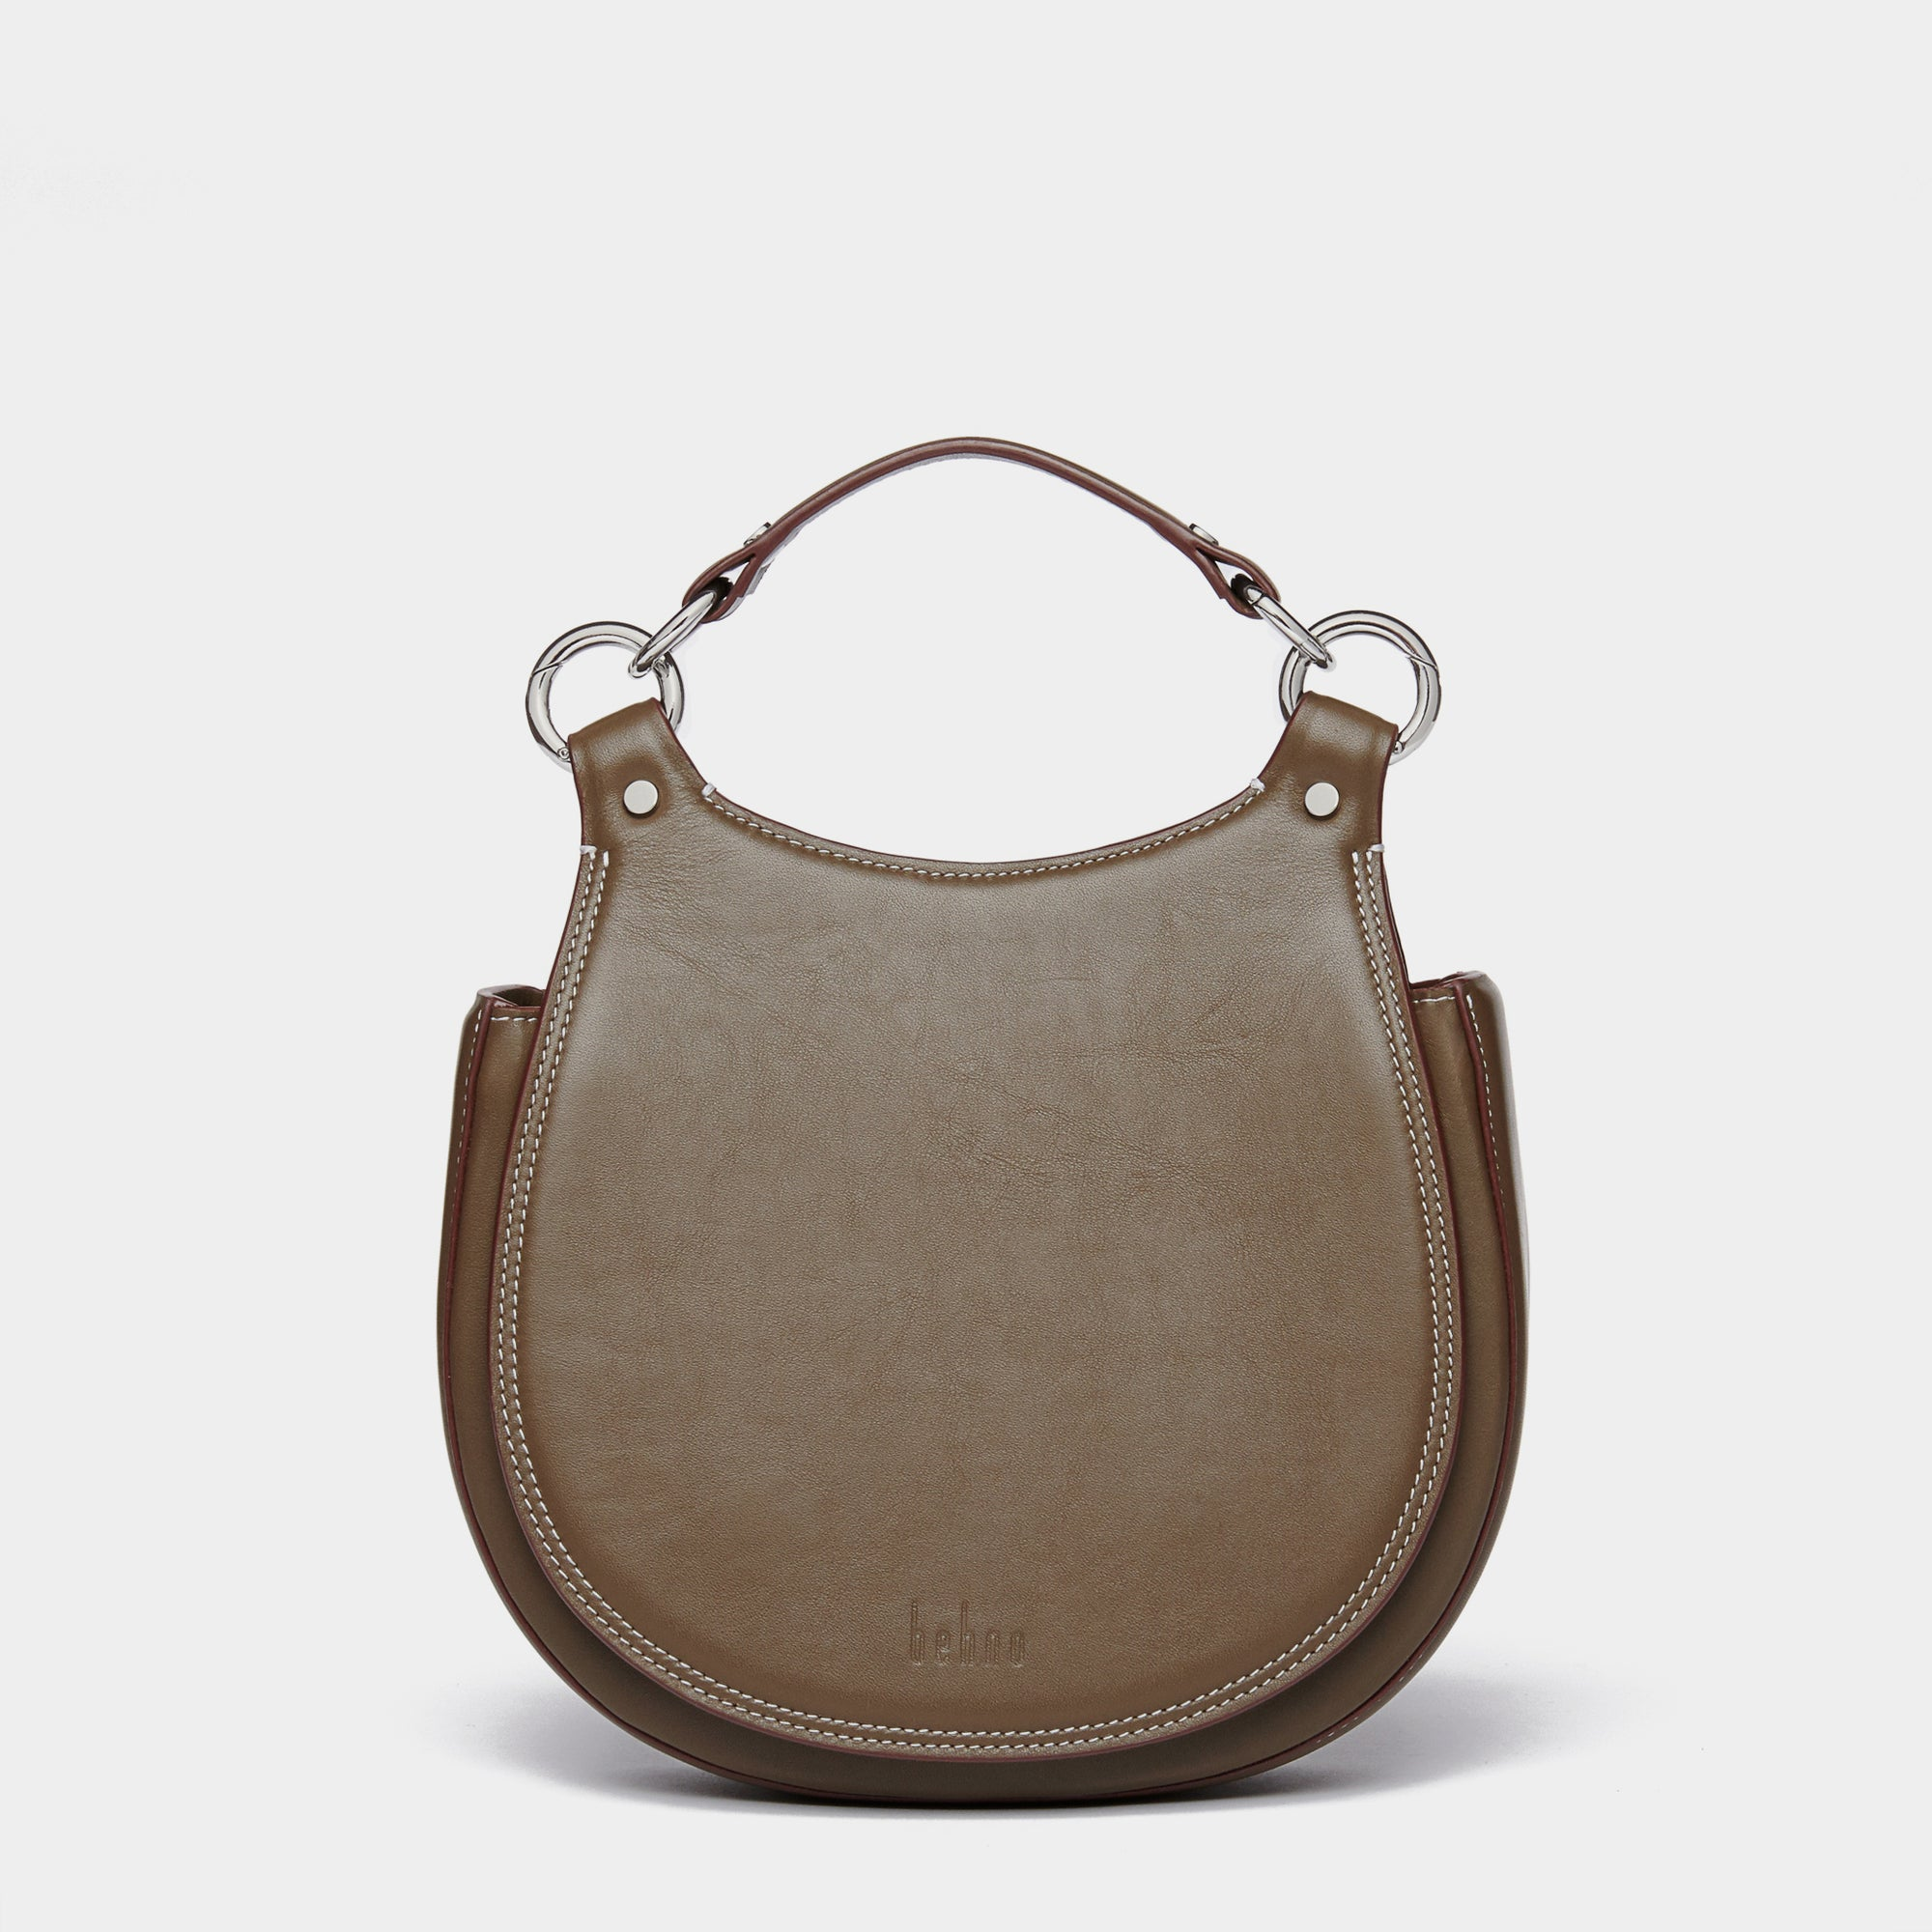 TILDA SADDLE BAG NAPPA ELEPHANT GRAY